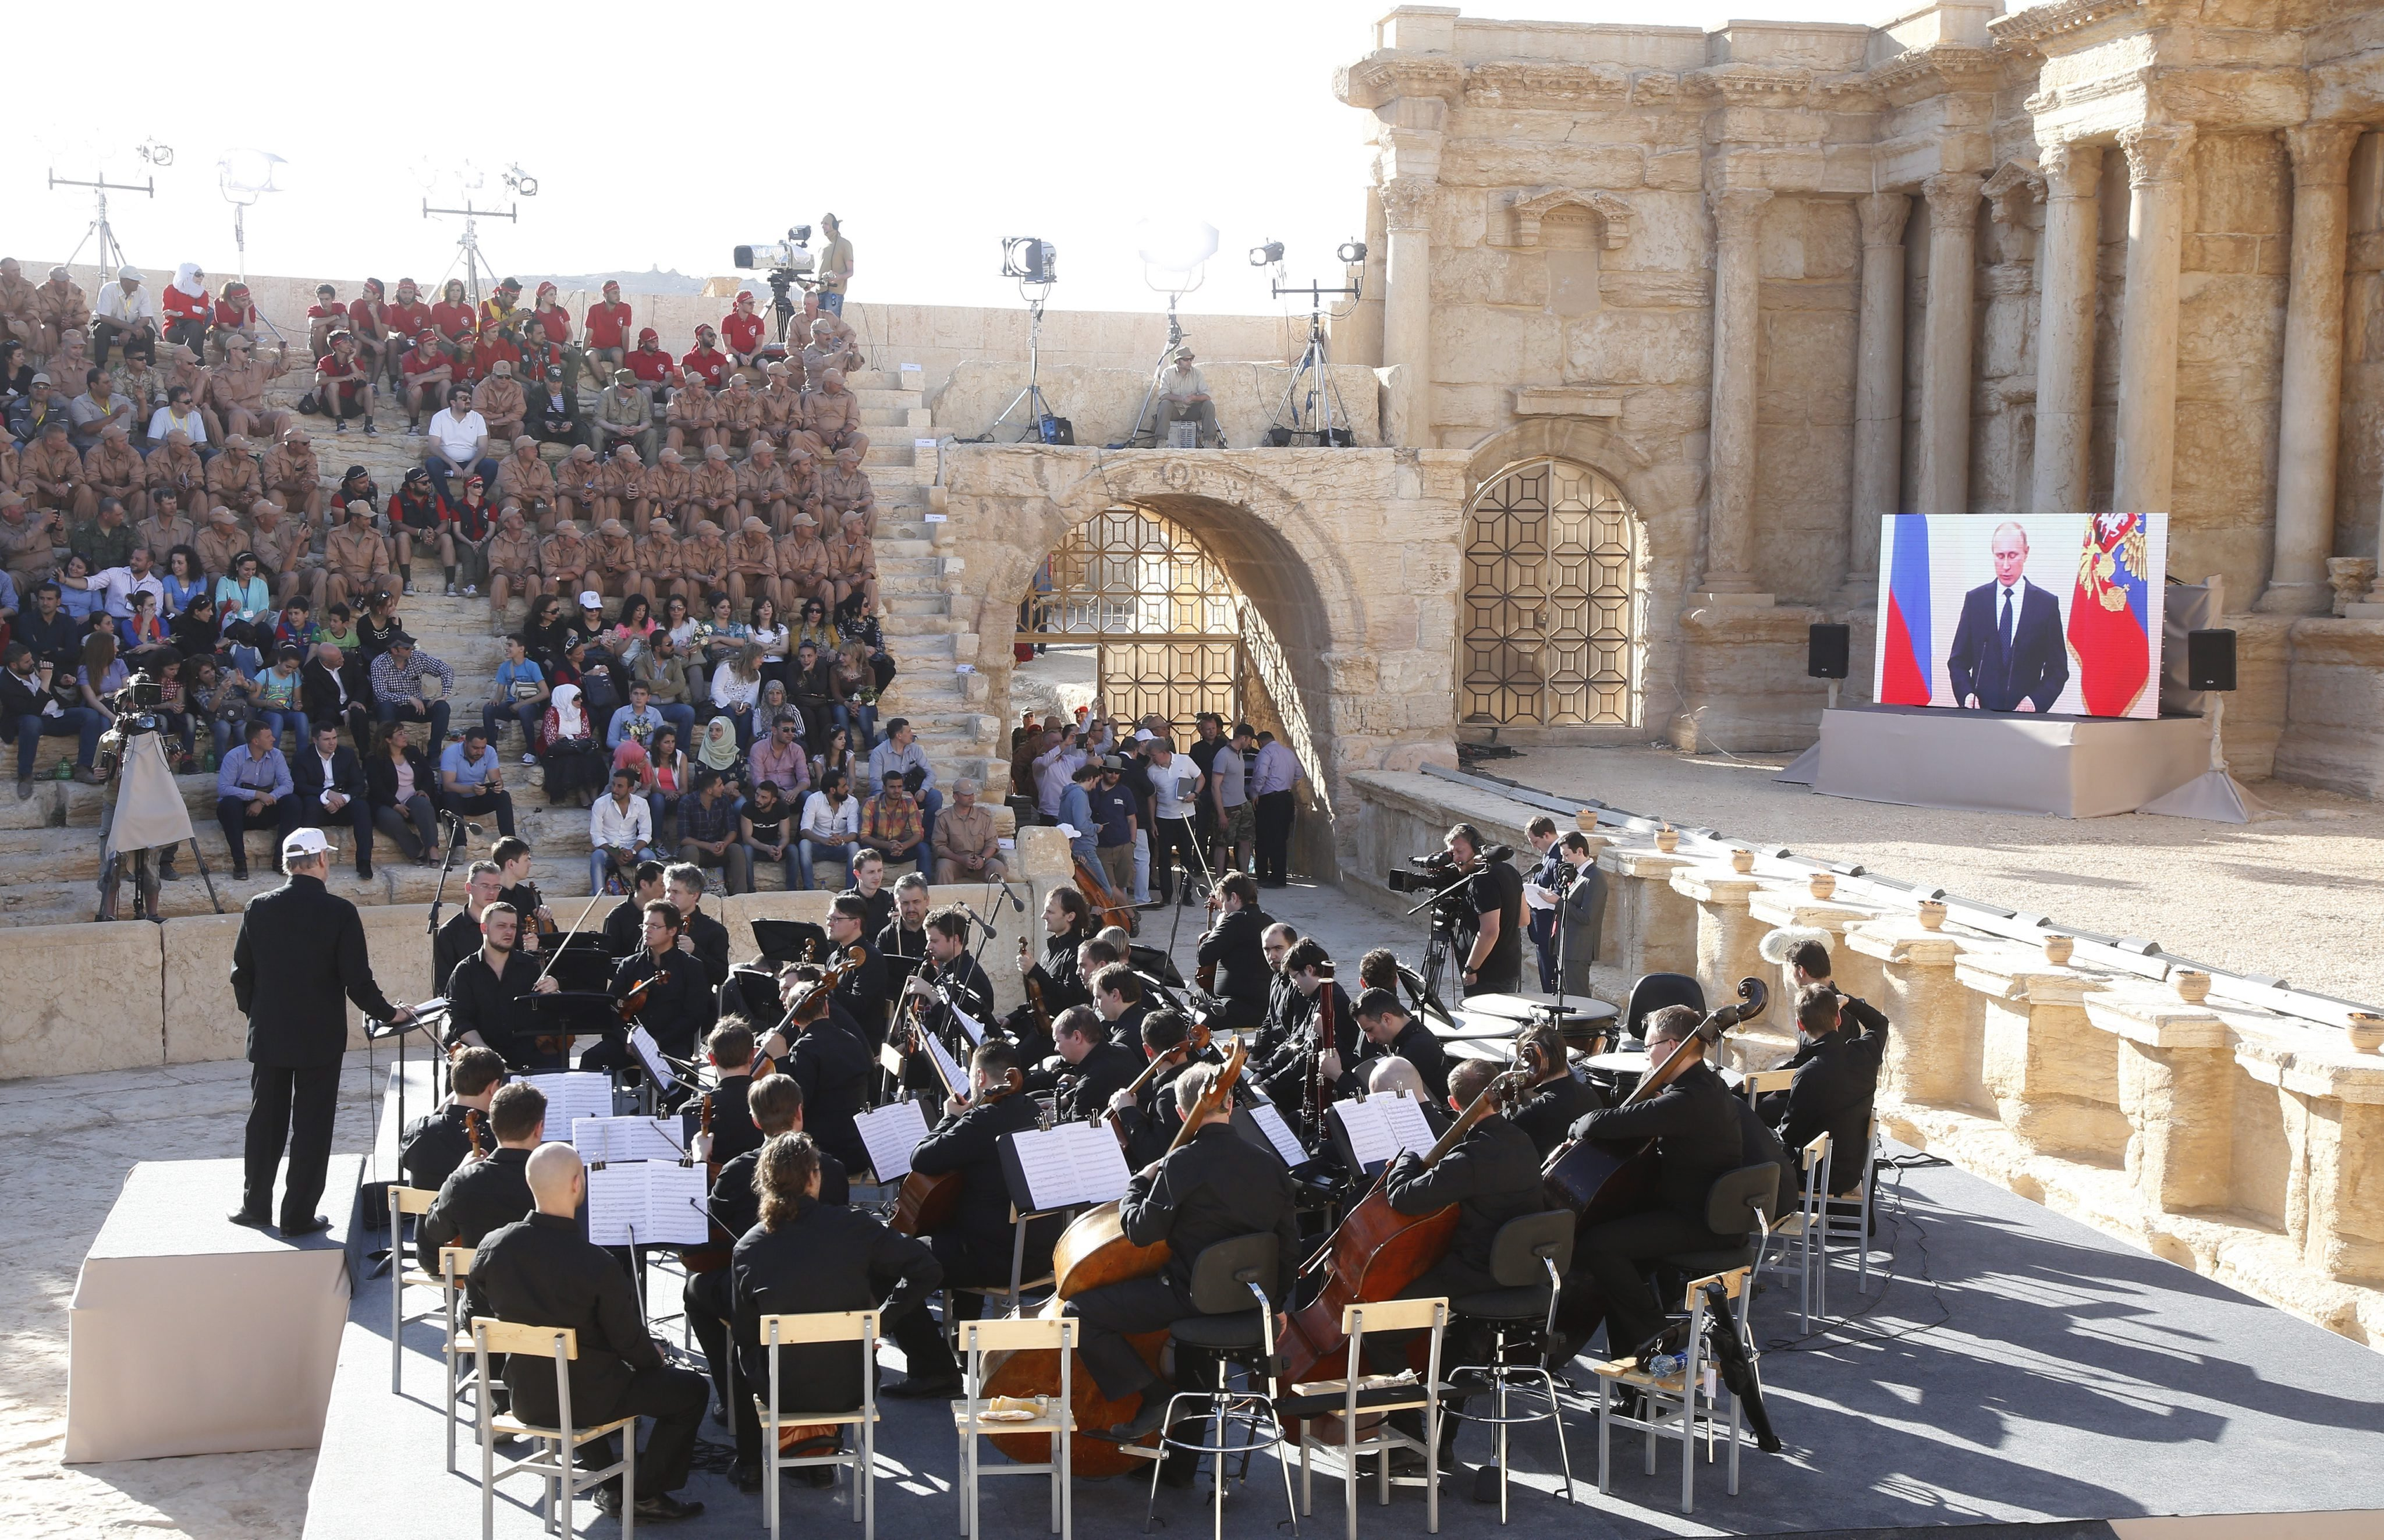 Russian President Vladimir Putin, via a live video feed (screen at right), delivers a speech during a concert by the Mariinsky Theater Orchestra in Palmyra amphitheater in Syria, on May 5, 2016.